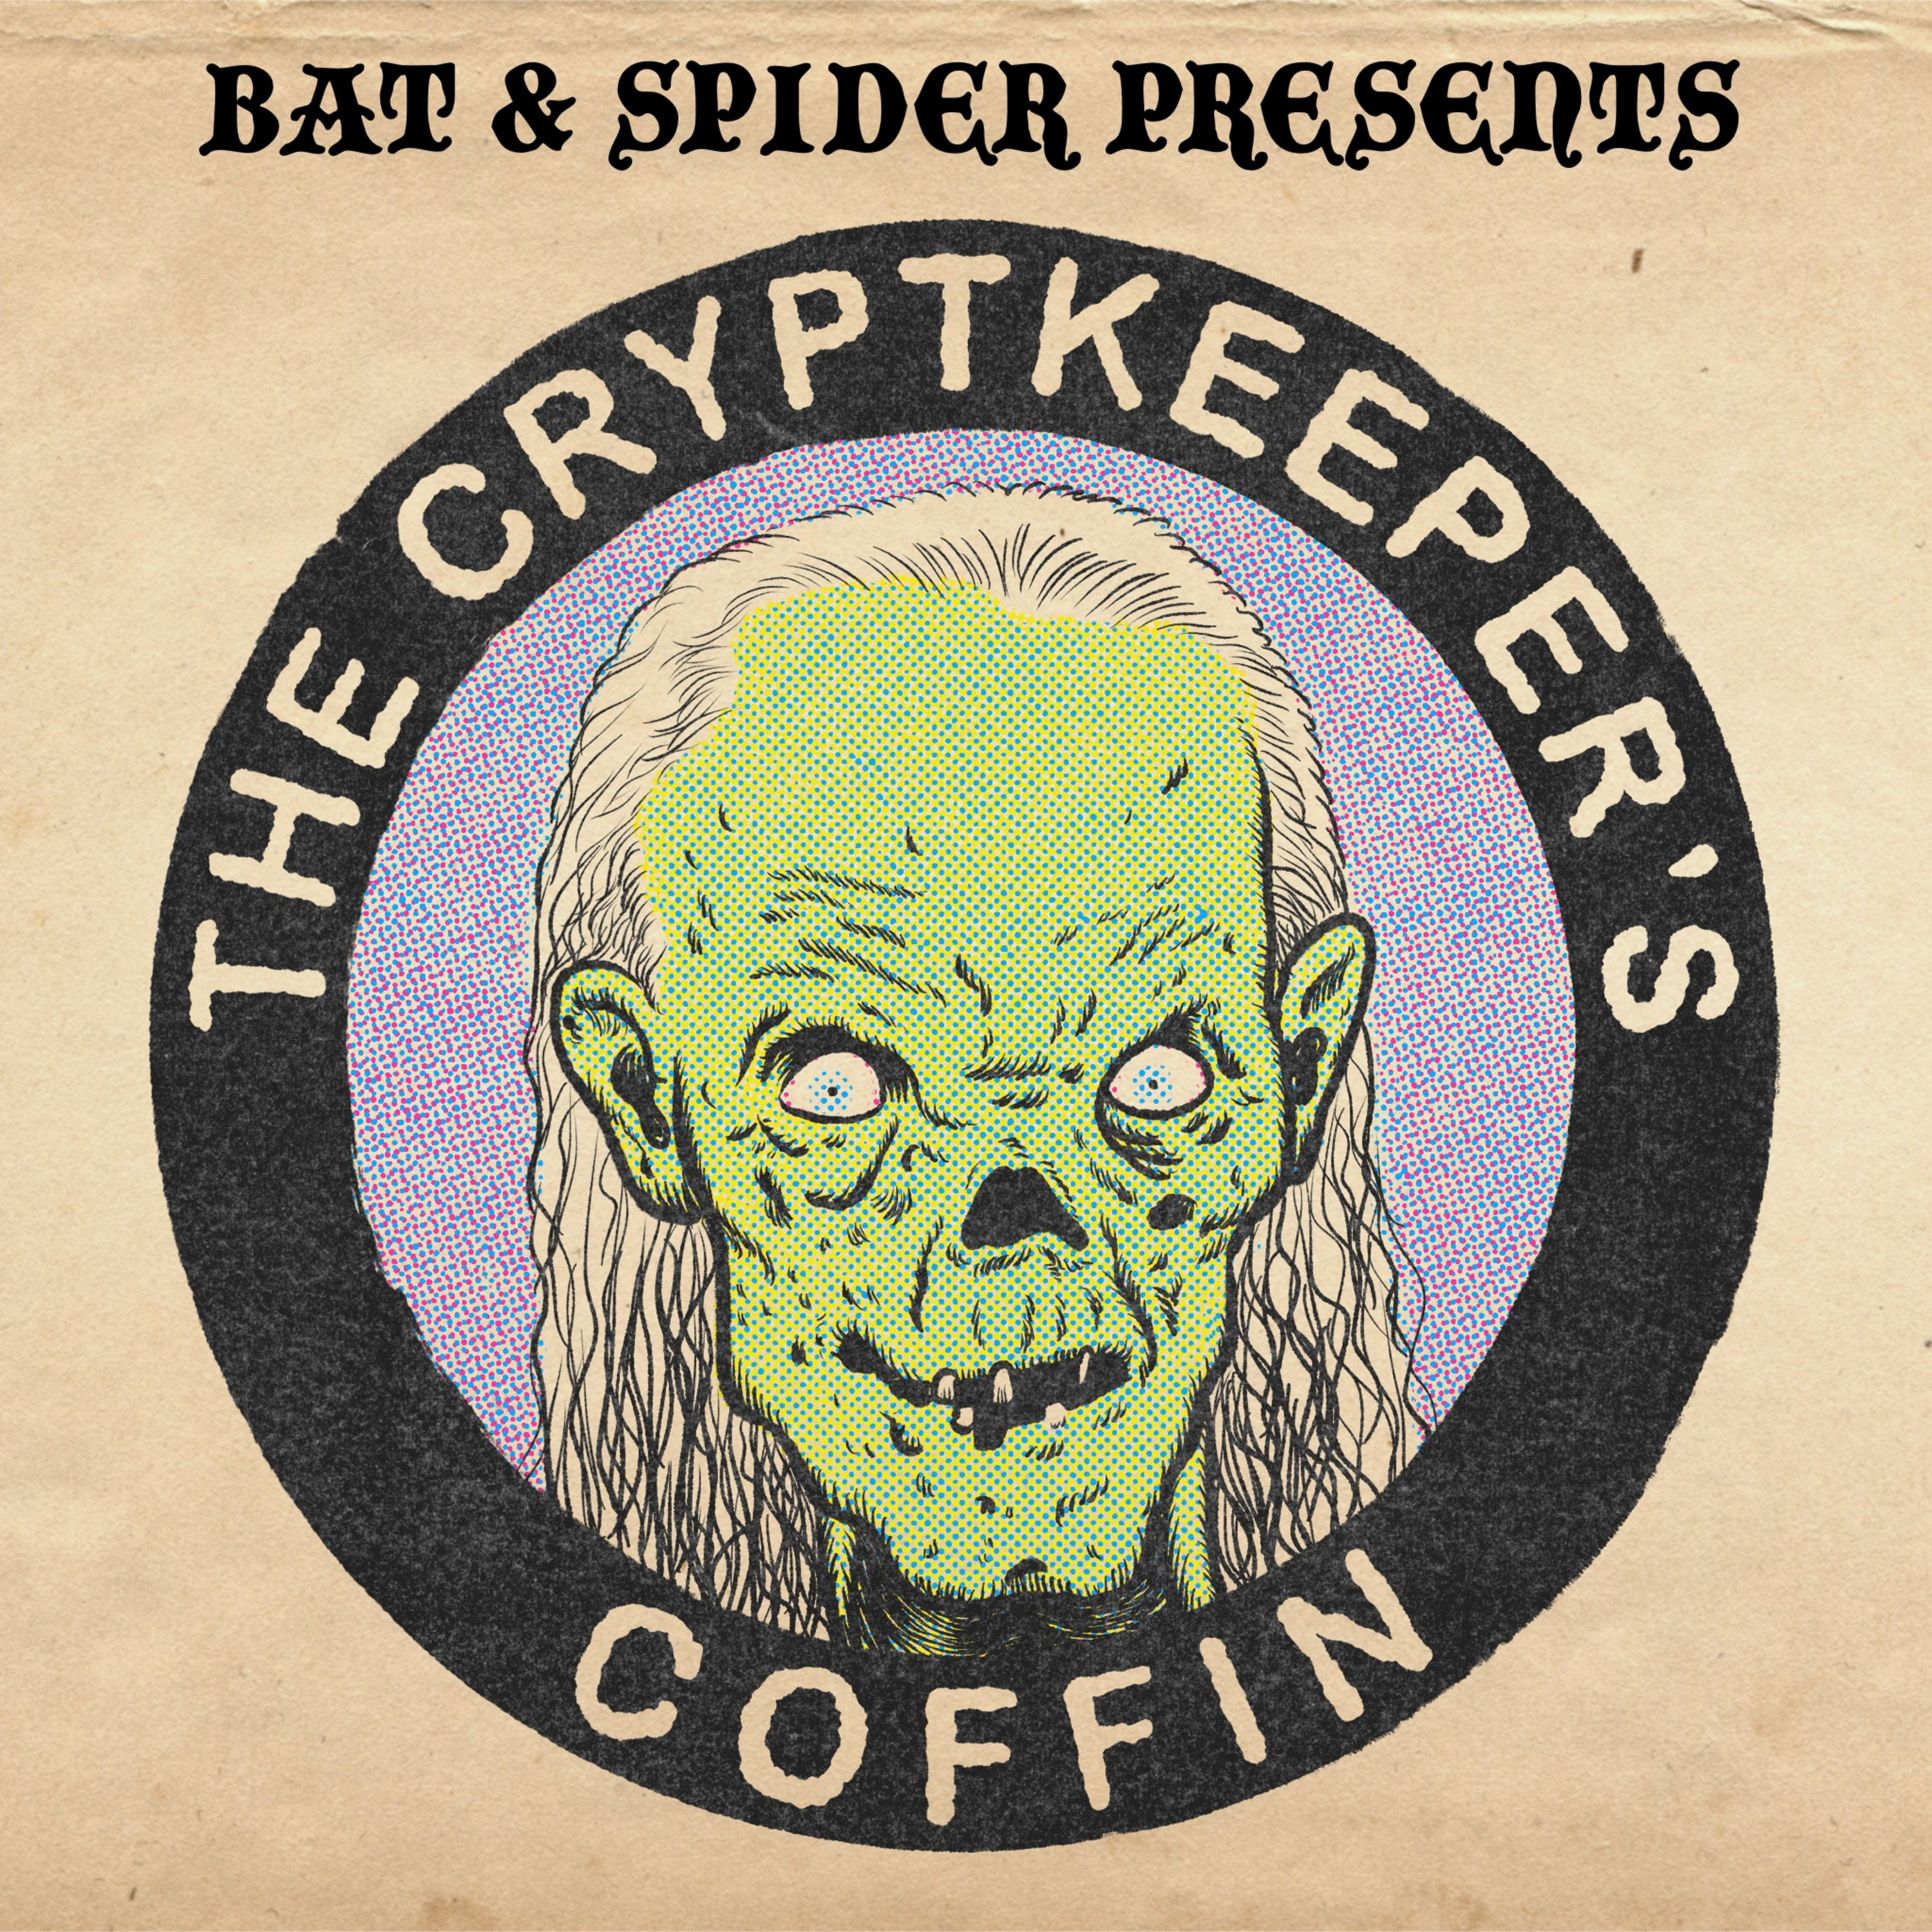 The Crypt Keeper's Coffin 006 - Collection Completed